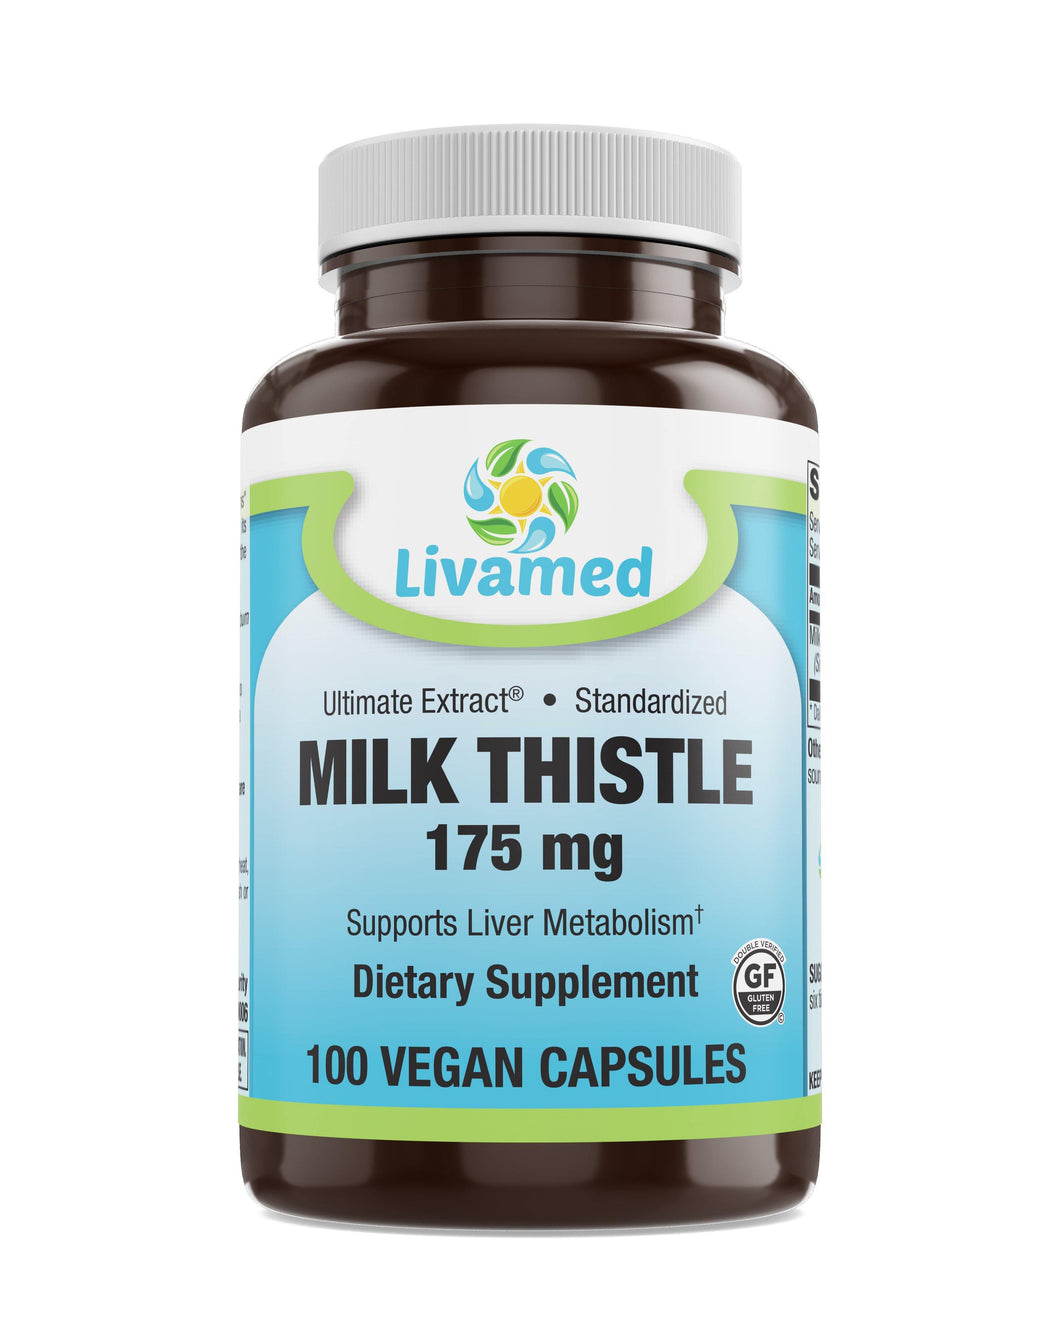 Livamed - Milk Thistle 175 mg Veg Caps 100 Count